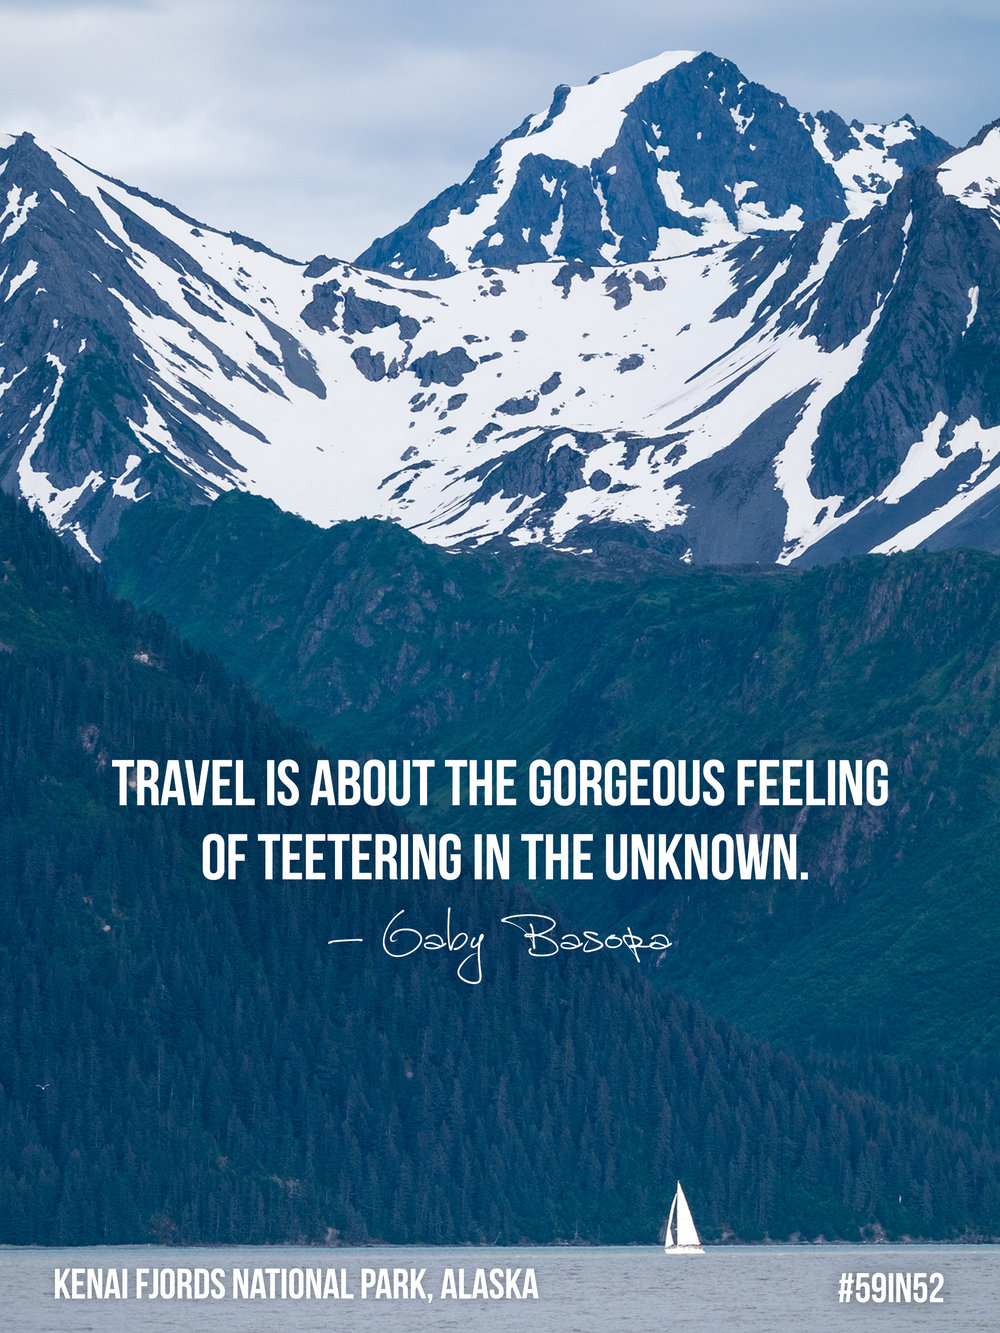 """Travel is about the gorgeous feeling of teetering in the unknown."" - Gaby Basoro"